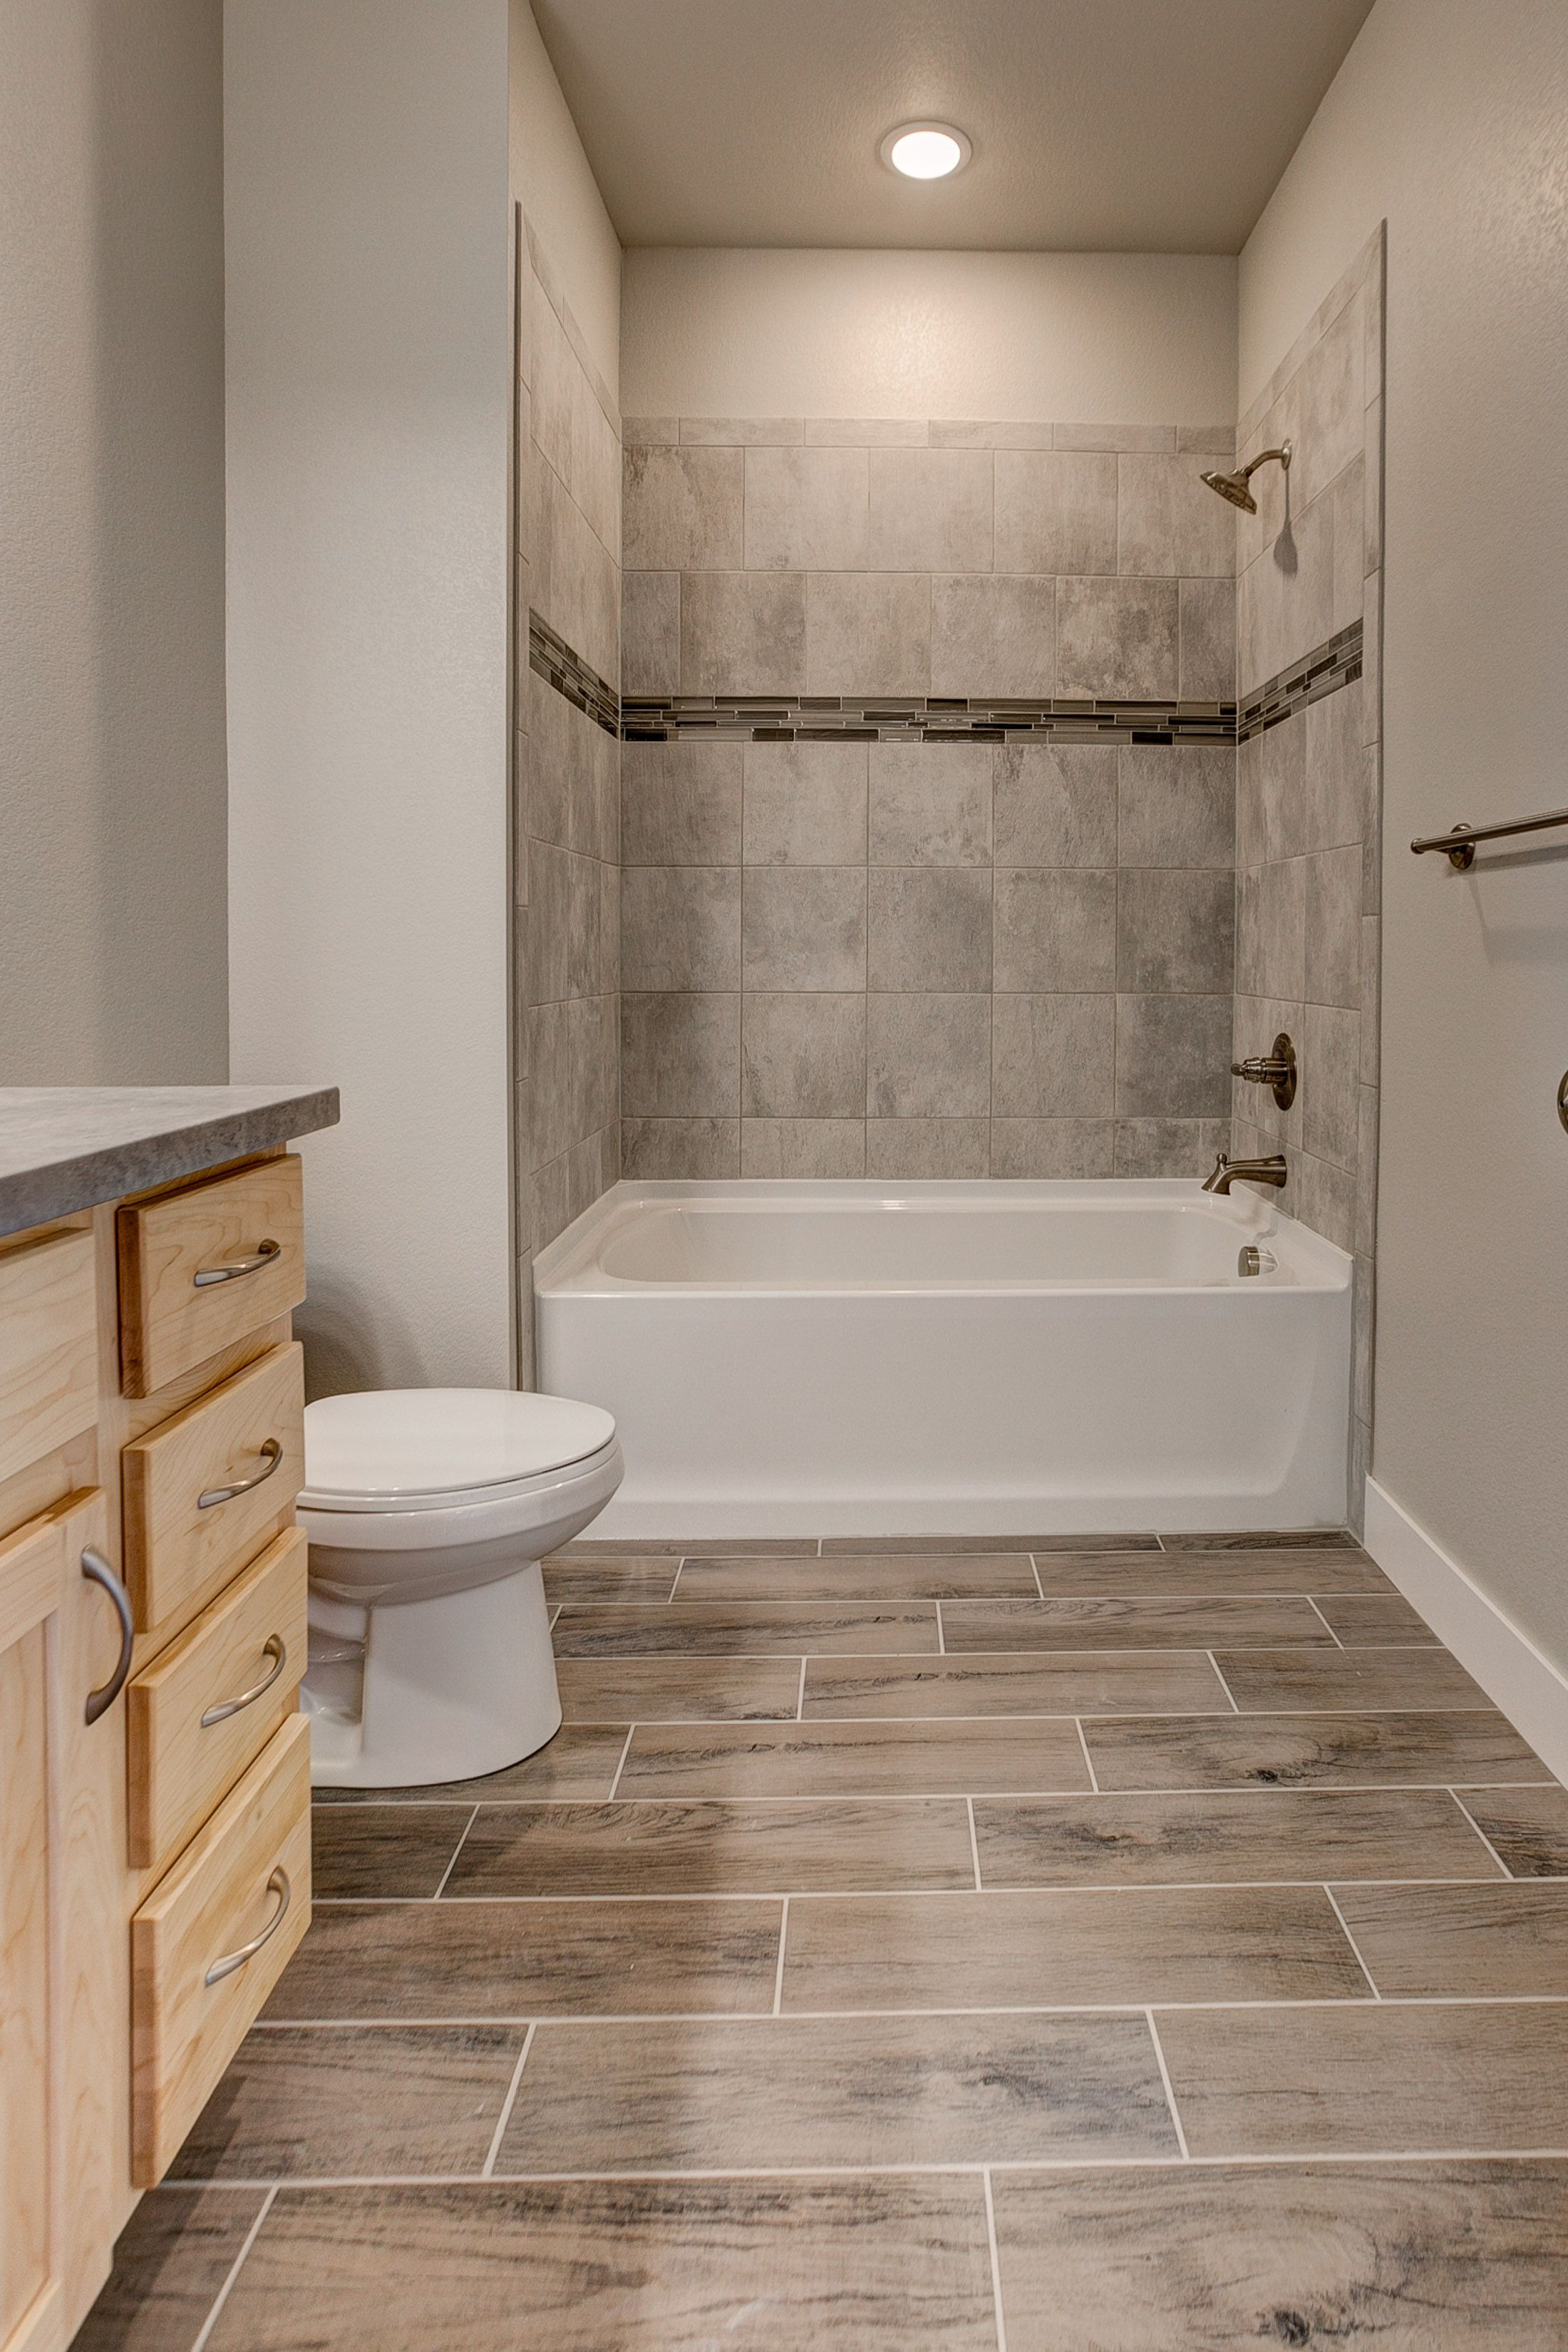 Bathroom featured in the Oxford By Landmark Homes  in Fort Collins-Loveland, CO